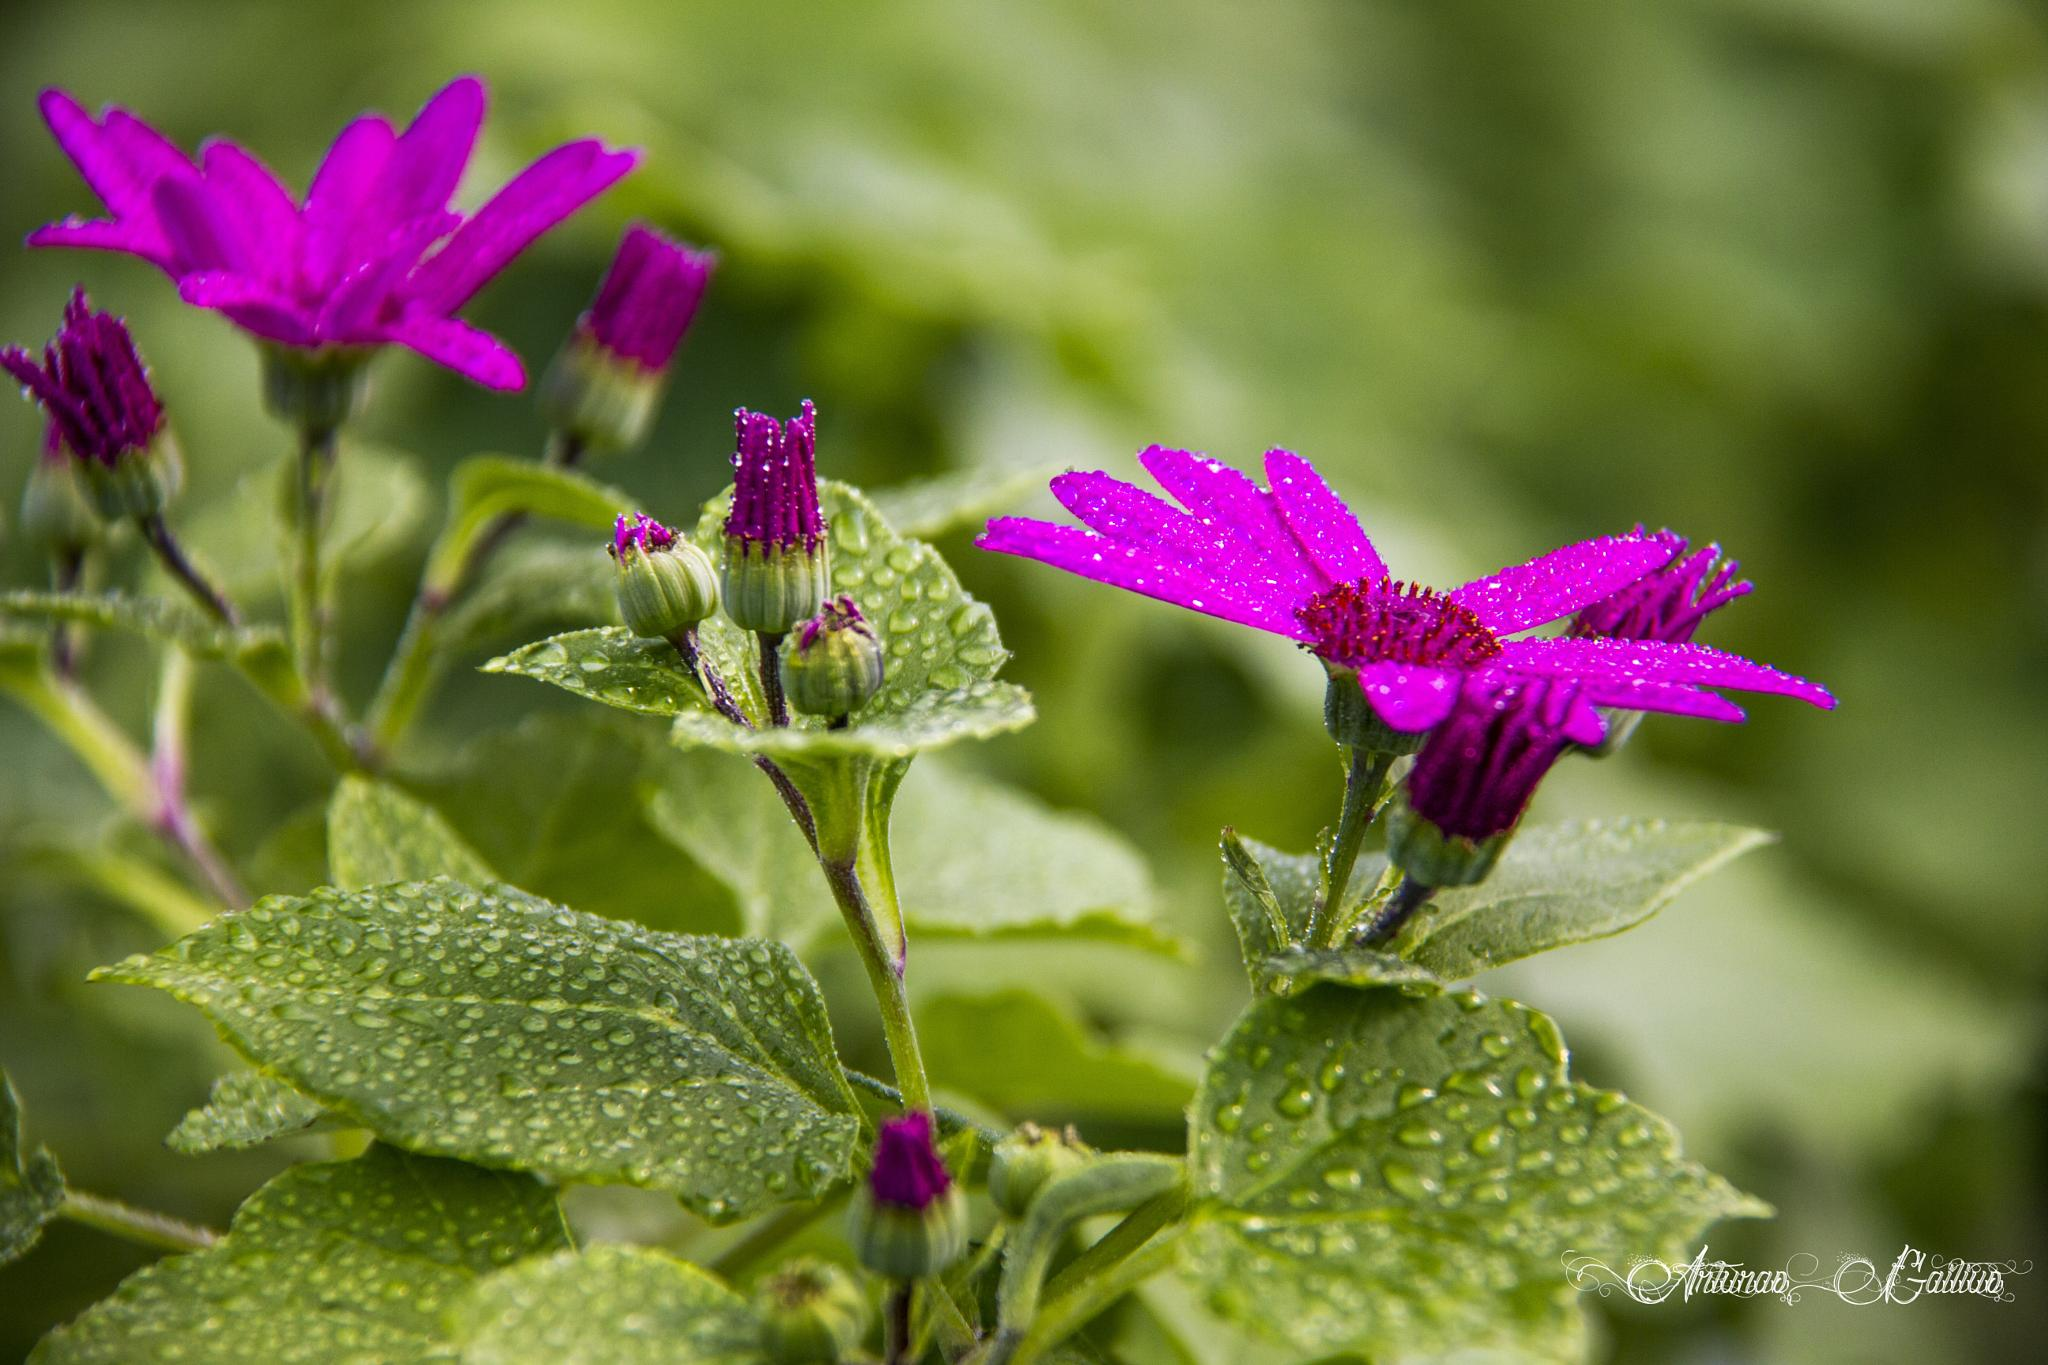 Pericallis senetti by Arturas Gailius